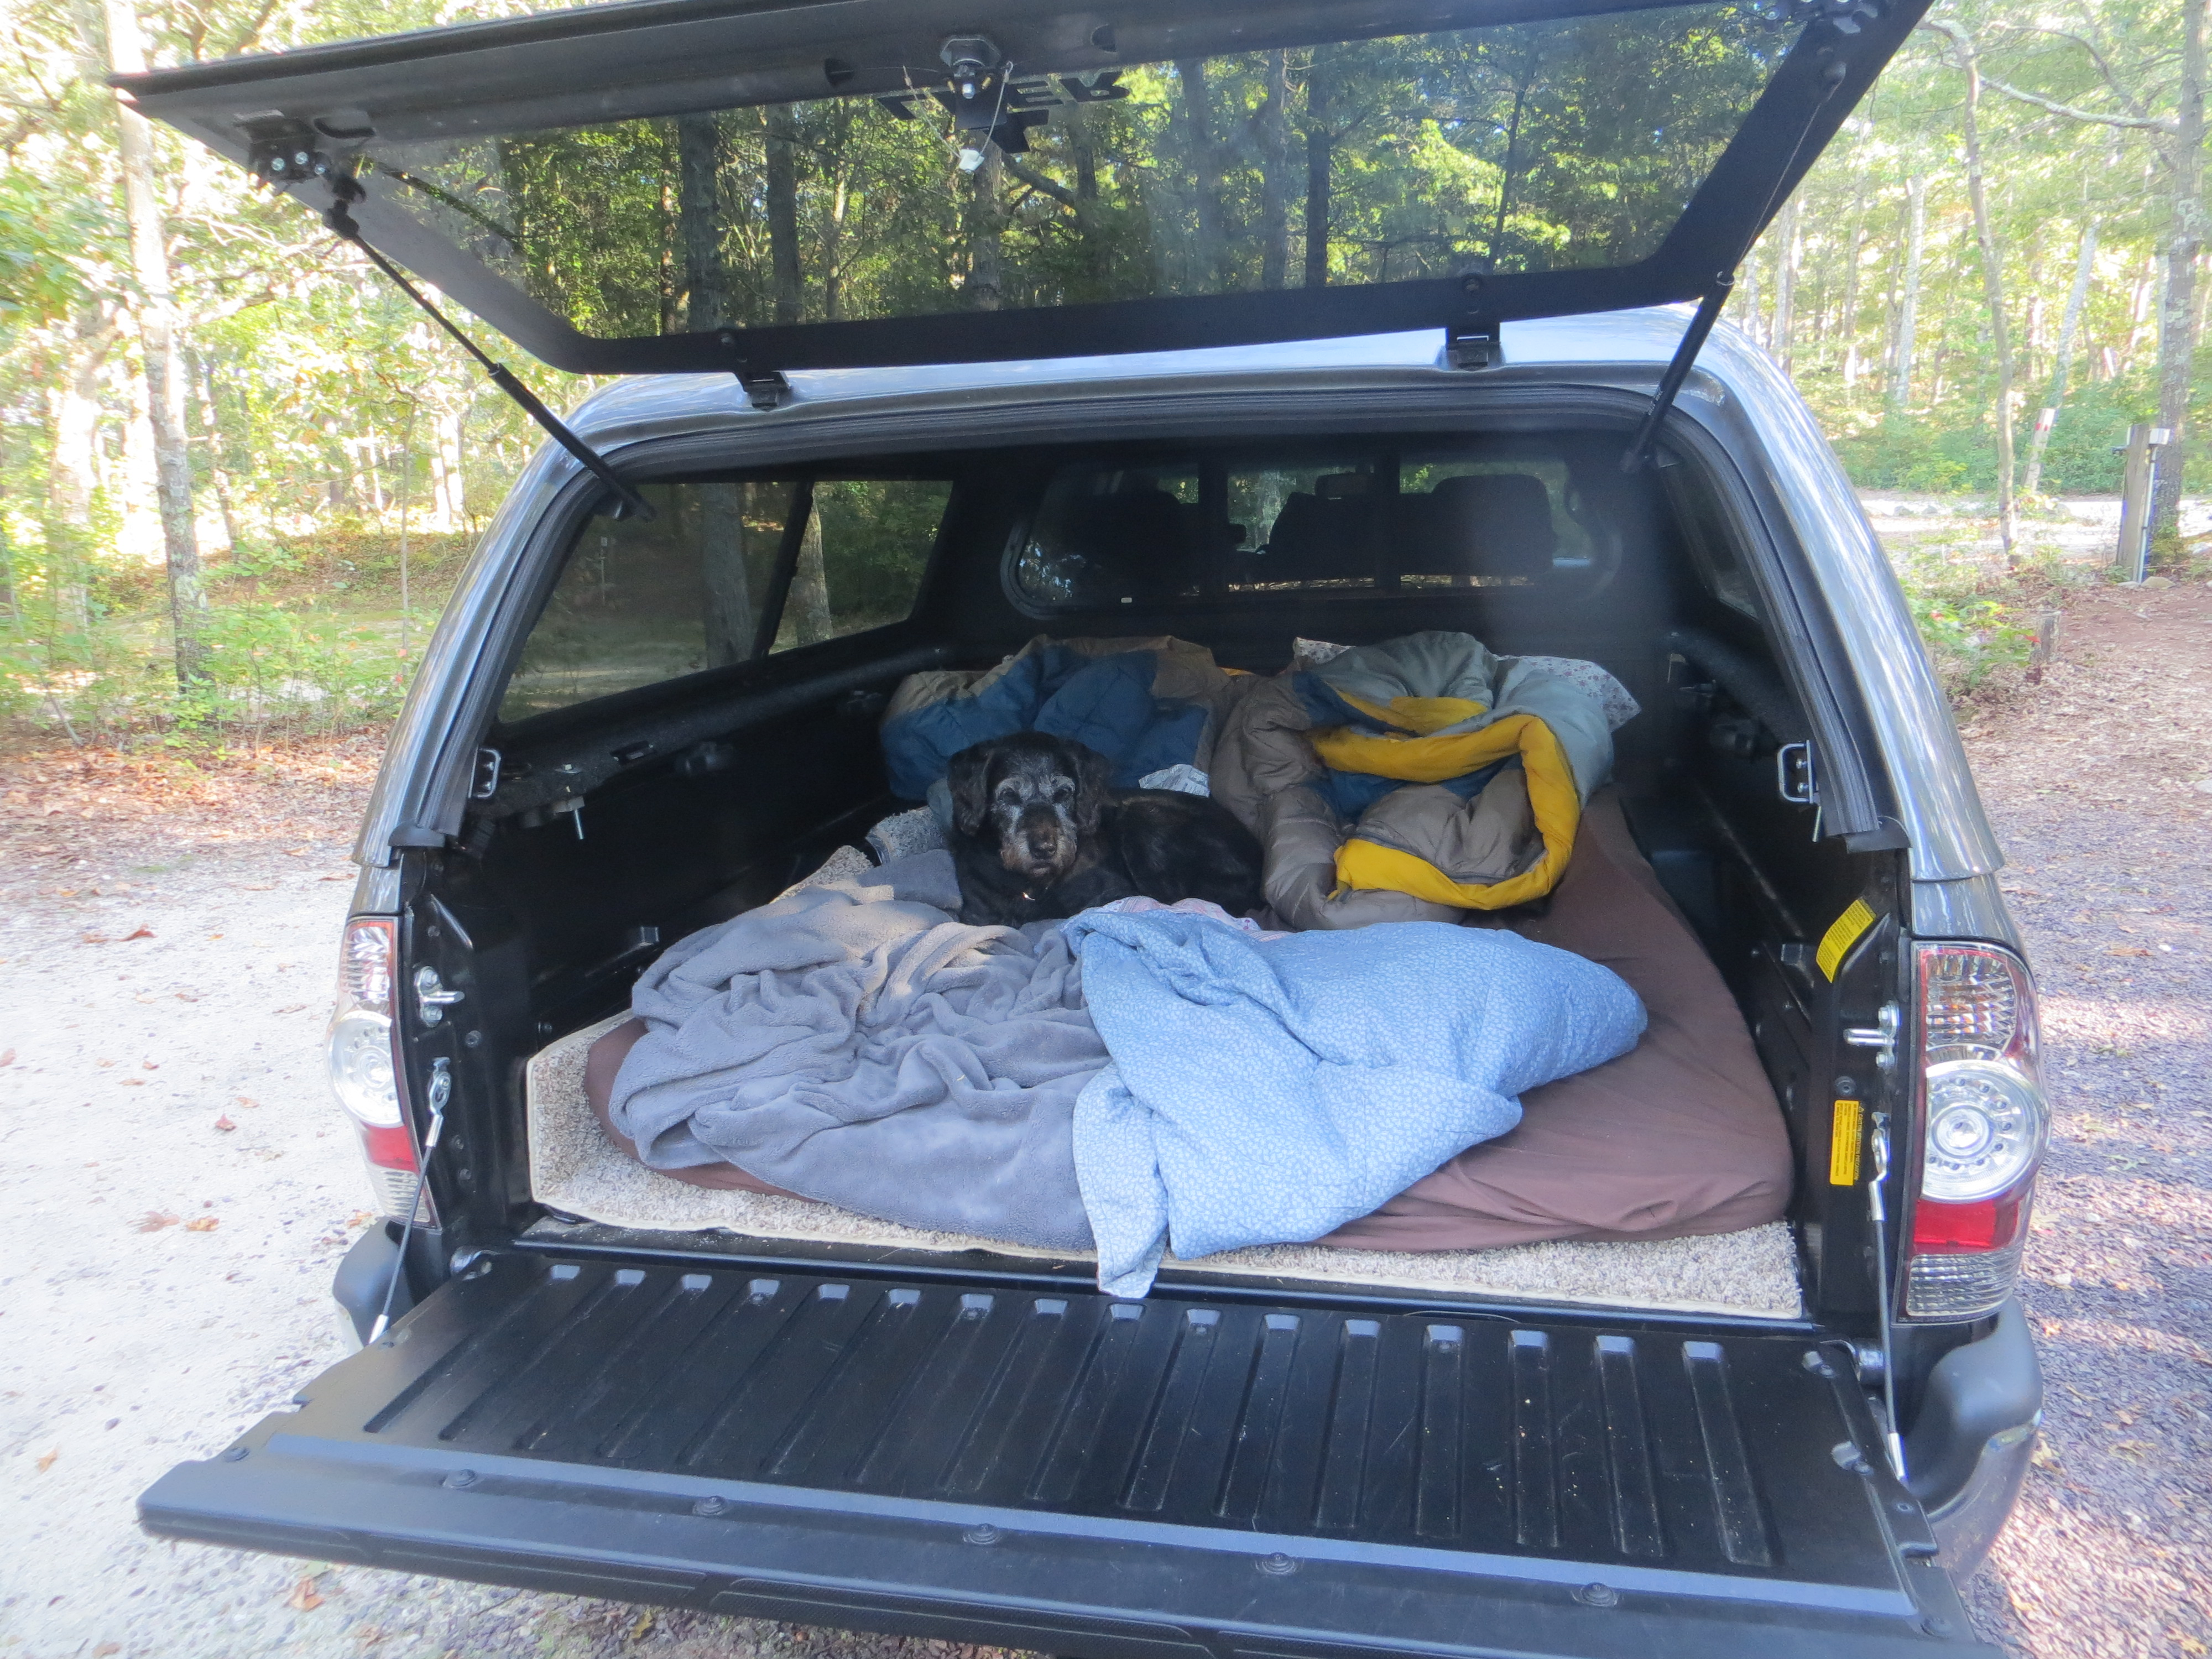 Camping new england ron mitchells adventure blog jack in truck sciox Choice Image